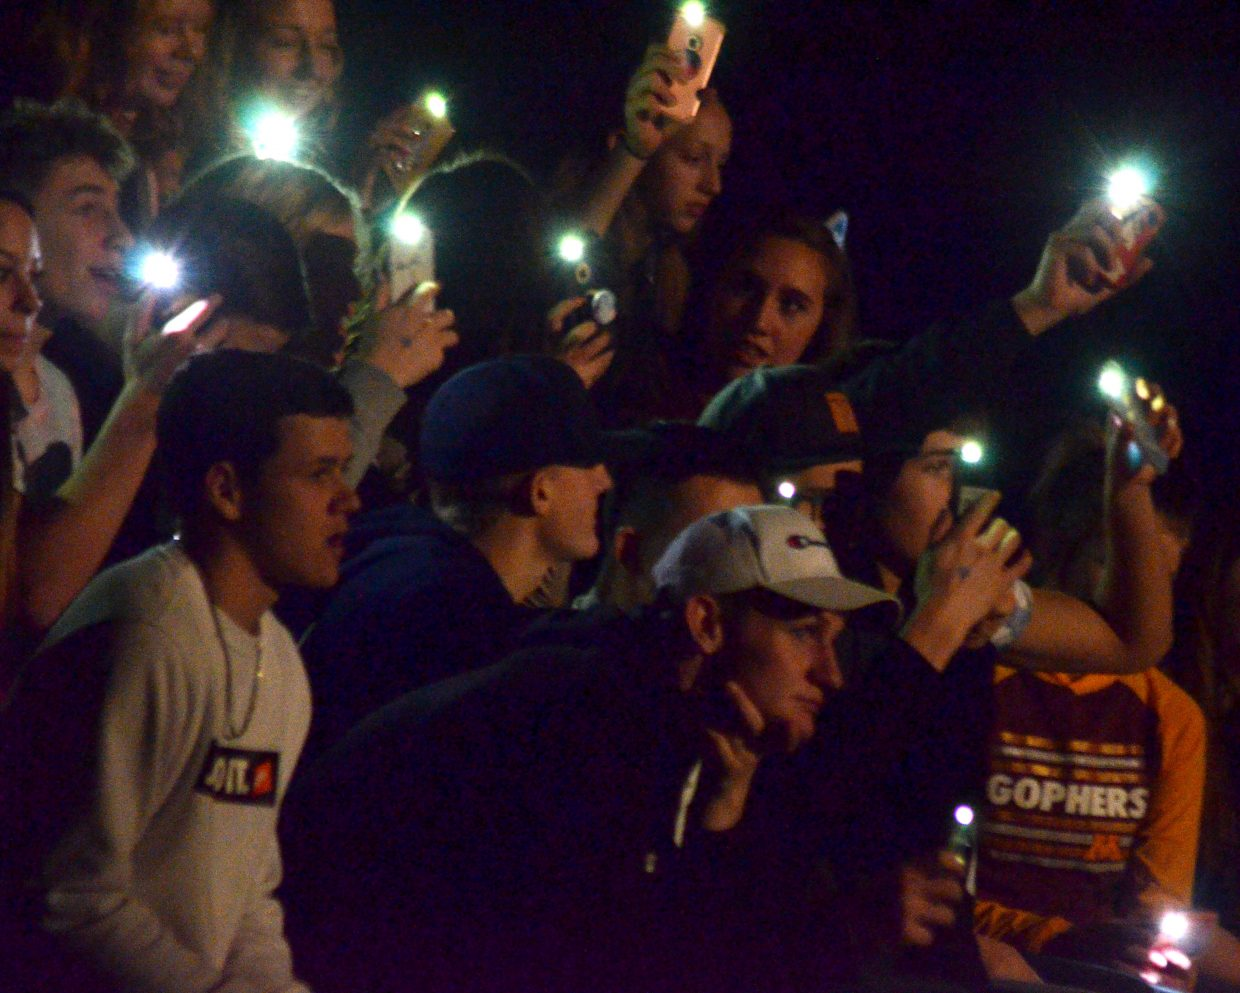 The Moffat County High School student section provides extra lighting via cell phone during pre-game introductions.